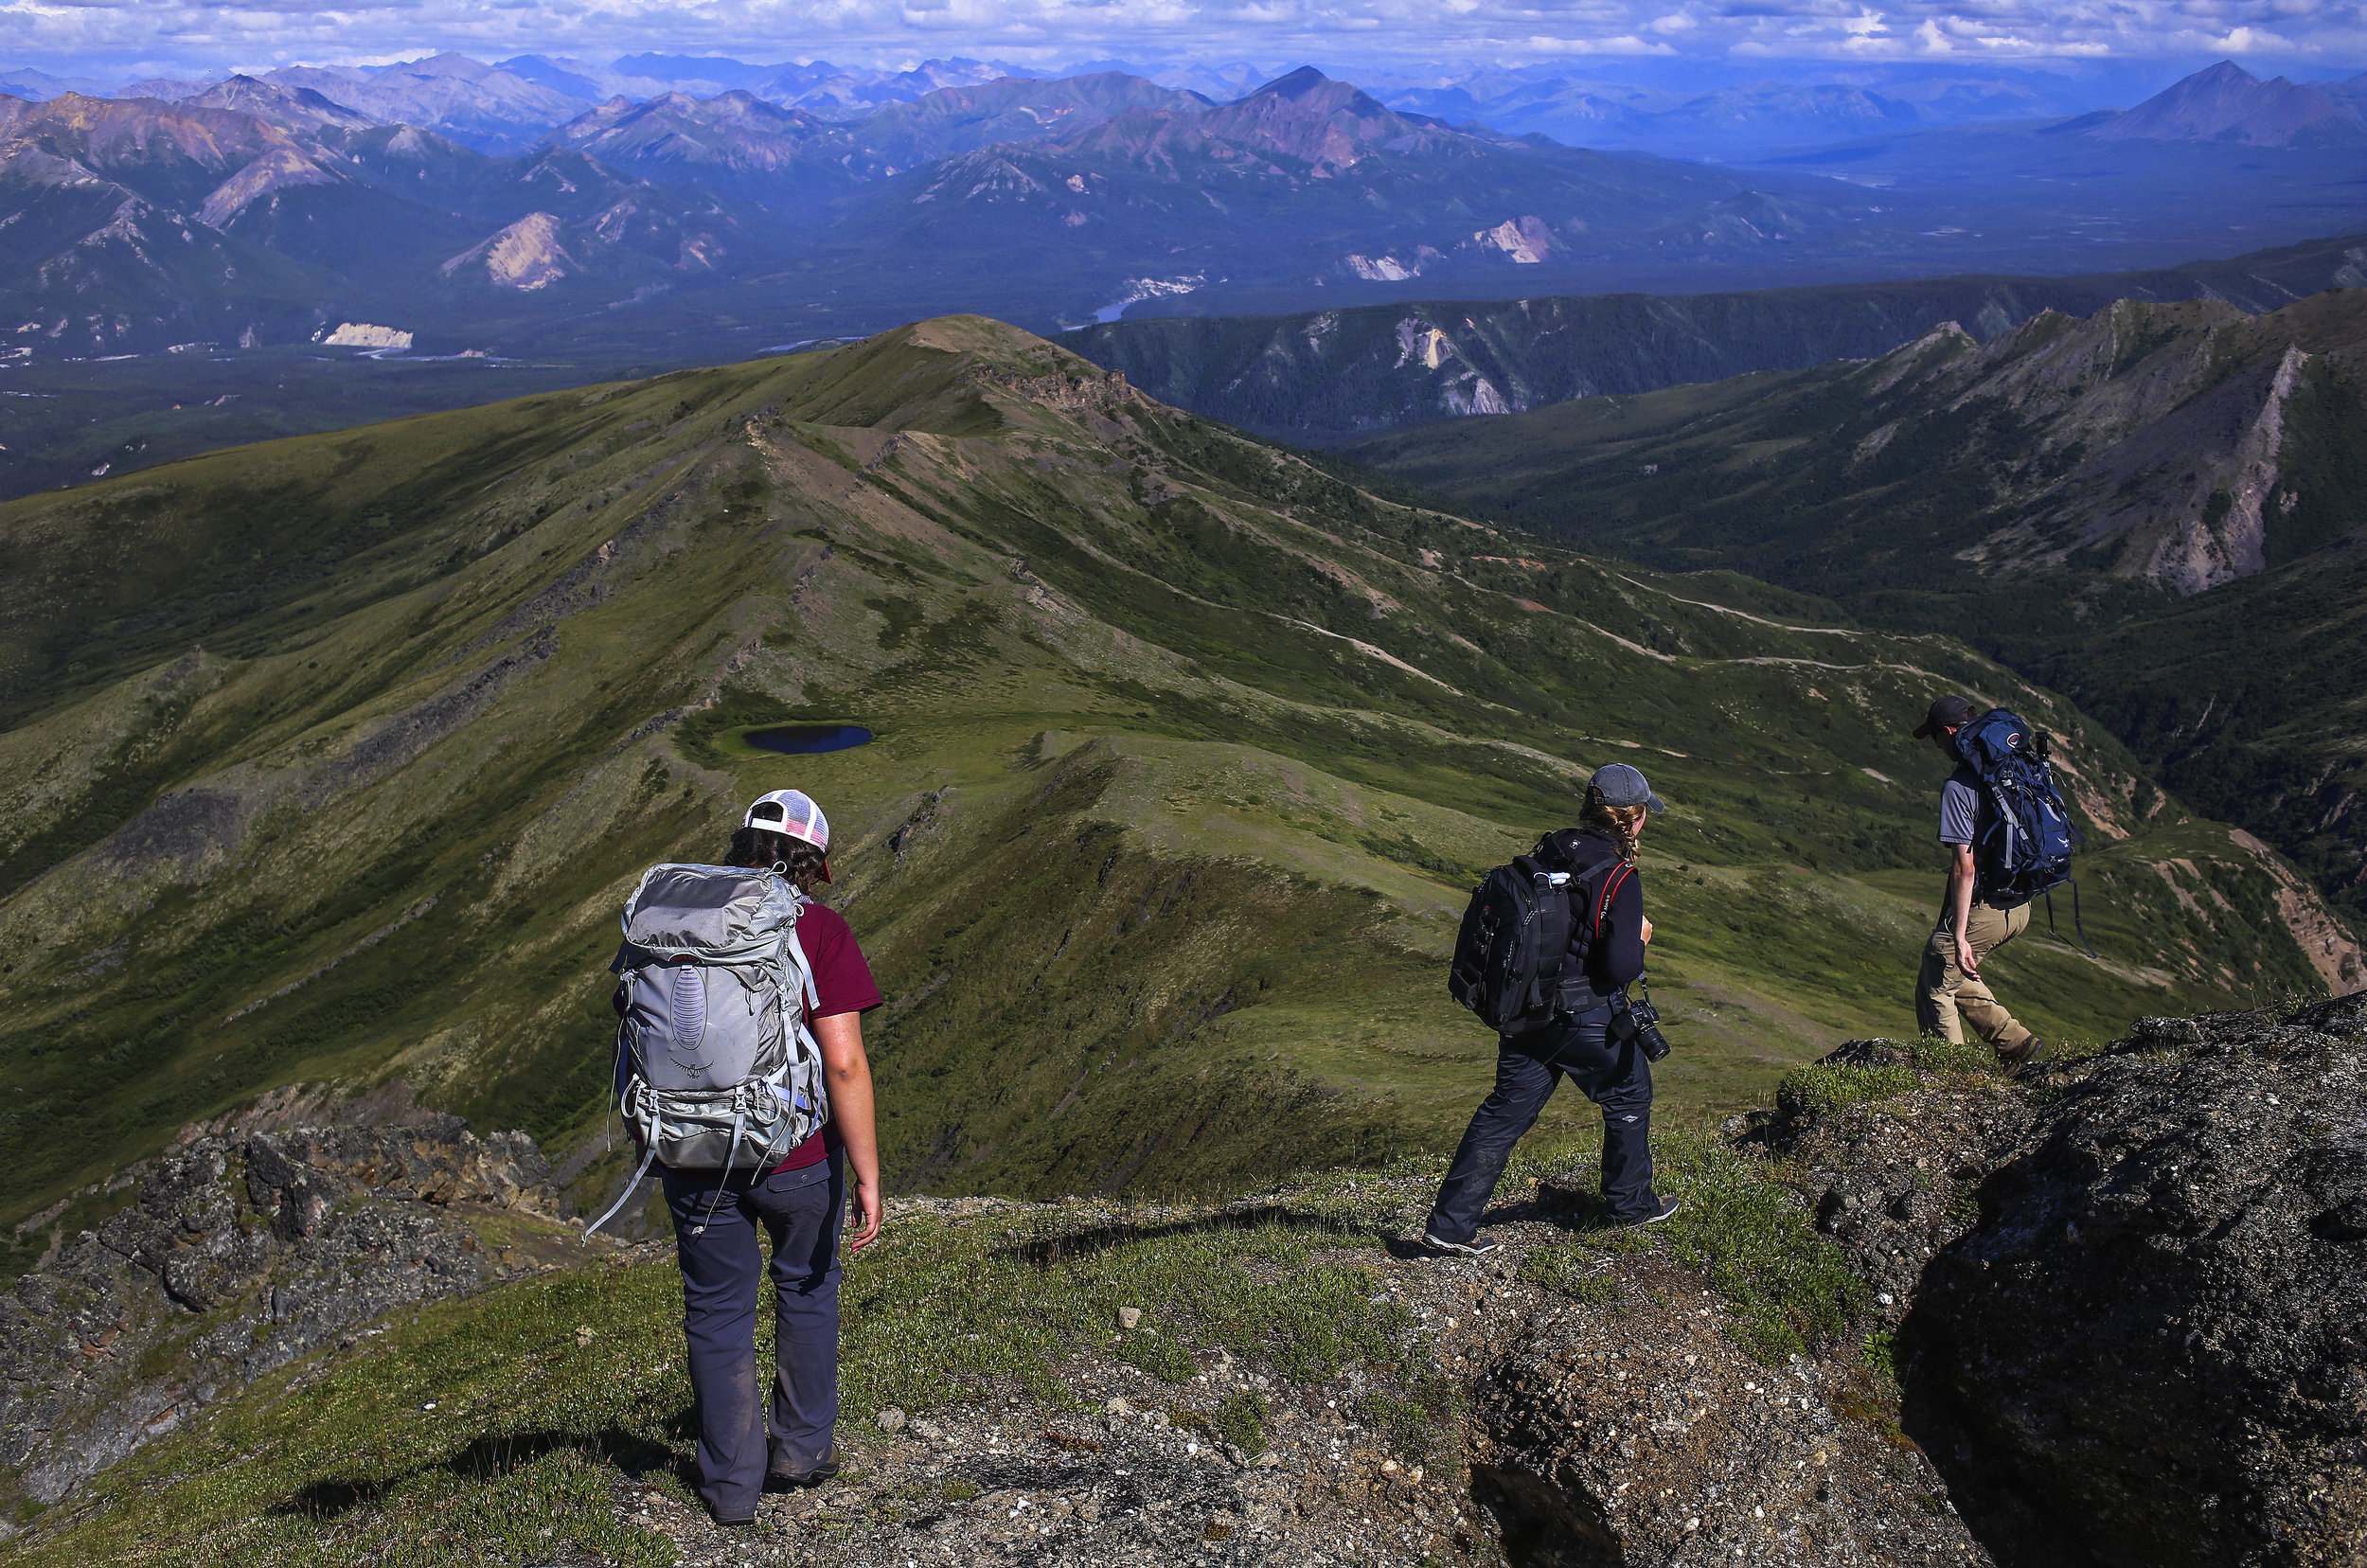 Hikers walk along a ridgeline leading to glacial erratics in Denali National Park and Preserve on July 30, 2017. They started at mile 7.5 of the park road and made their way east, ending at mile 3 where the erratics rest.